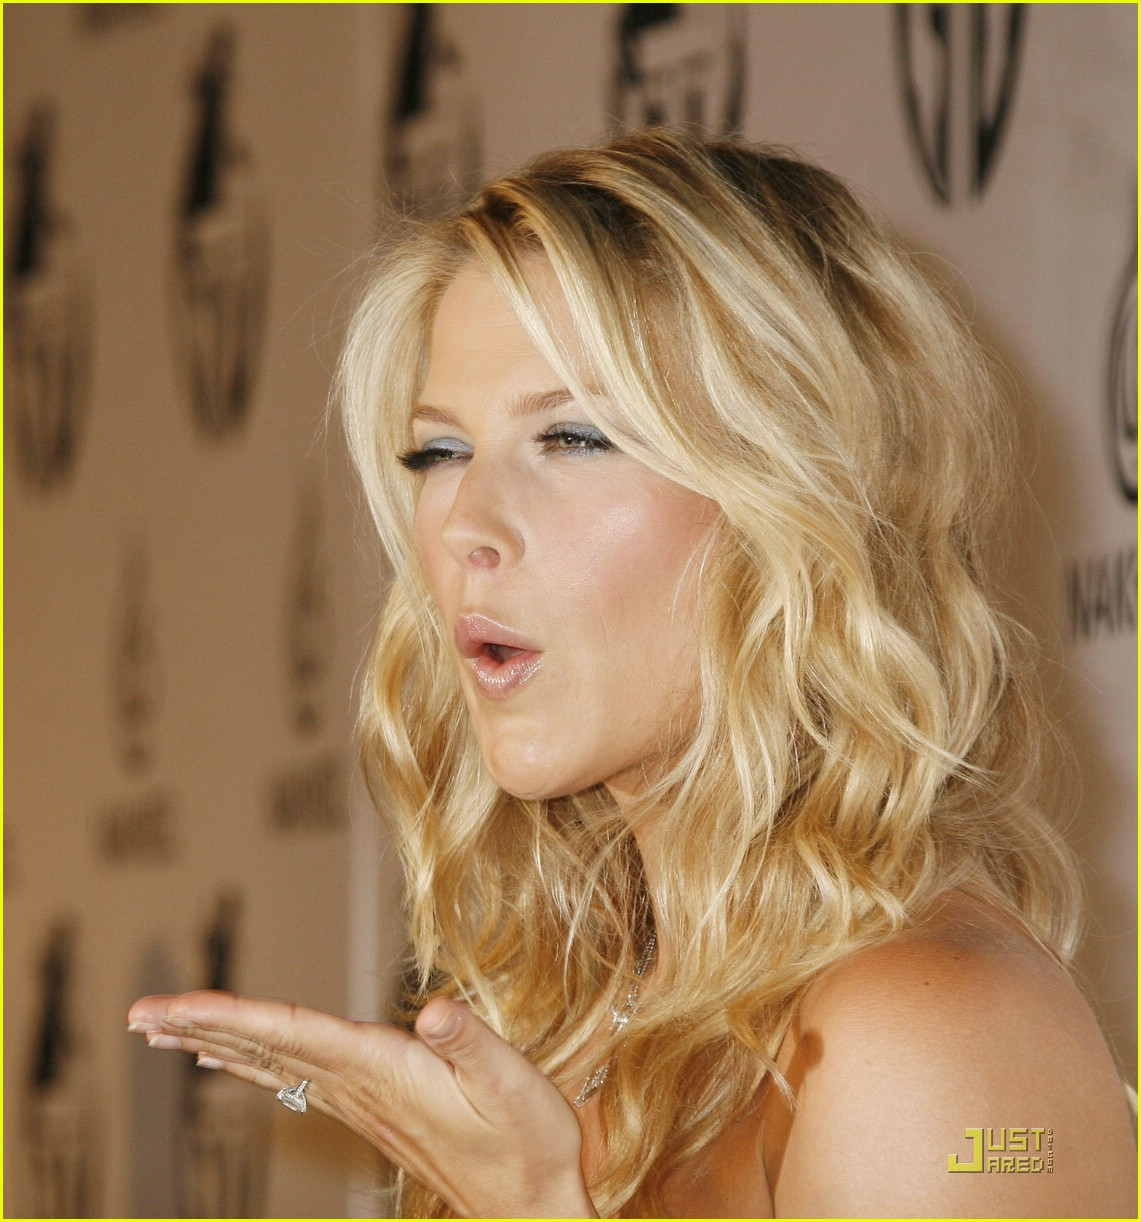 5cafe4c5bf Full Sized Photo of ali larter obsessed beyonce 09   Photo 1365821 ...